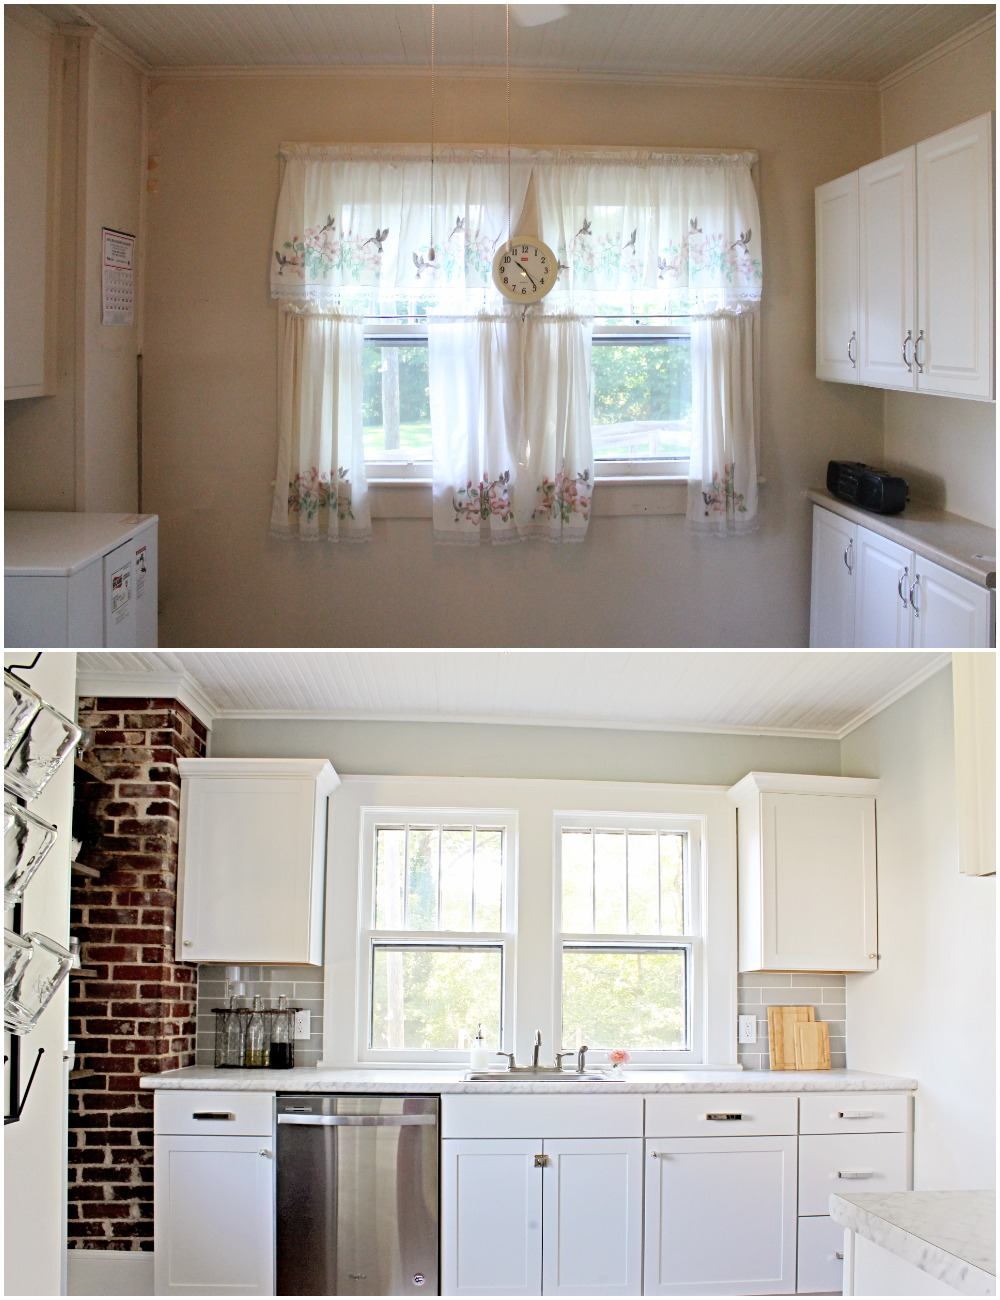 House Flipping Before and Afters - DIY BUDGET KITCHEN IDEAS WHITE SHAKER CABINETS (5).jpg